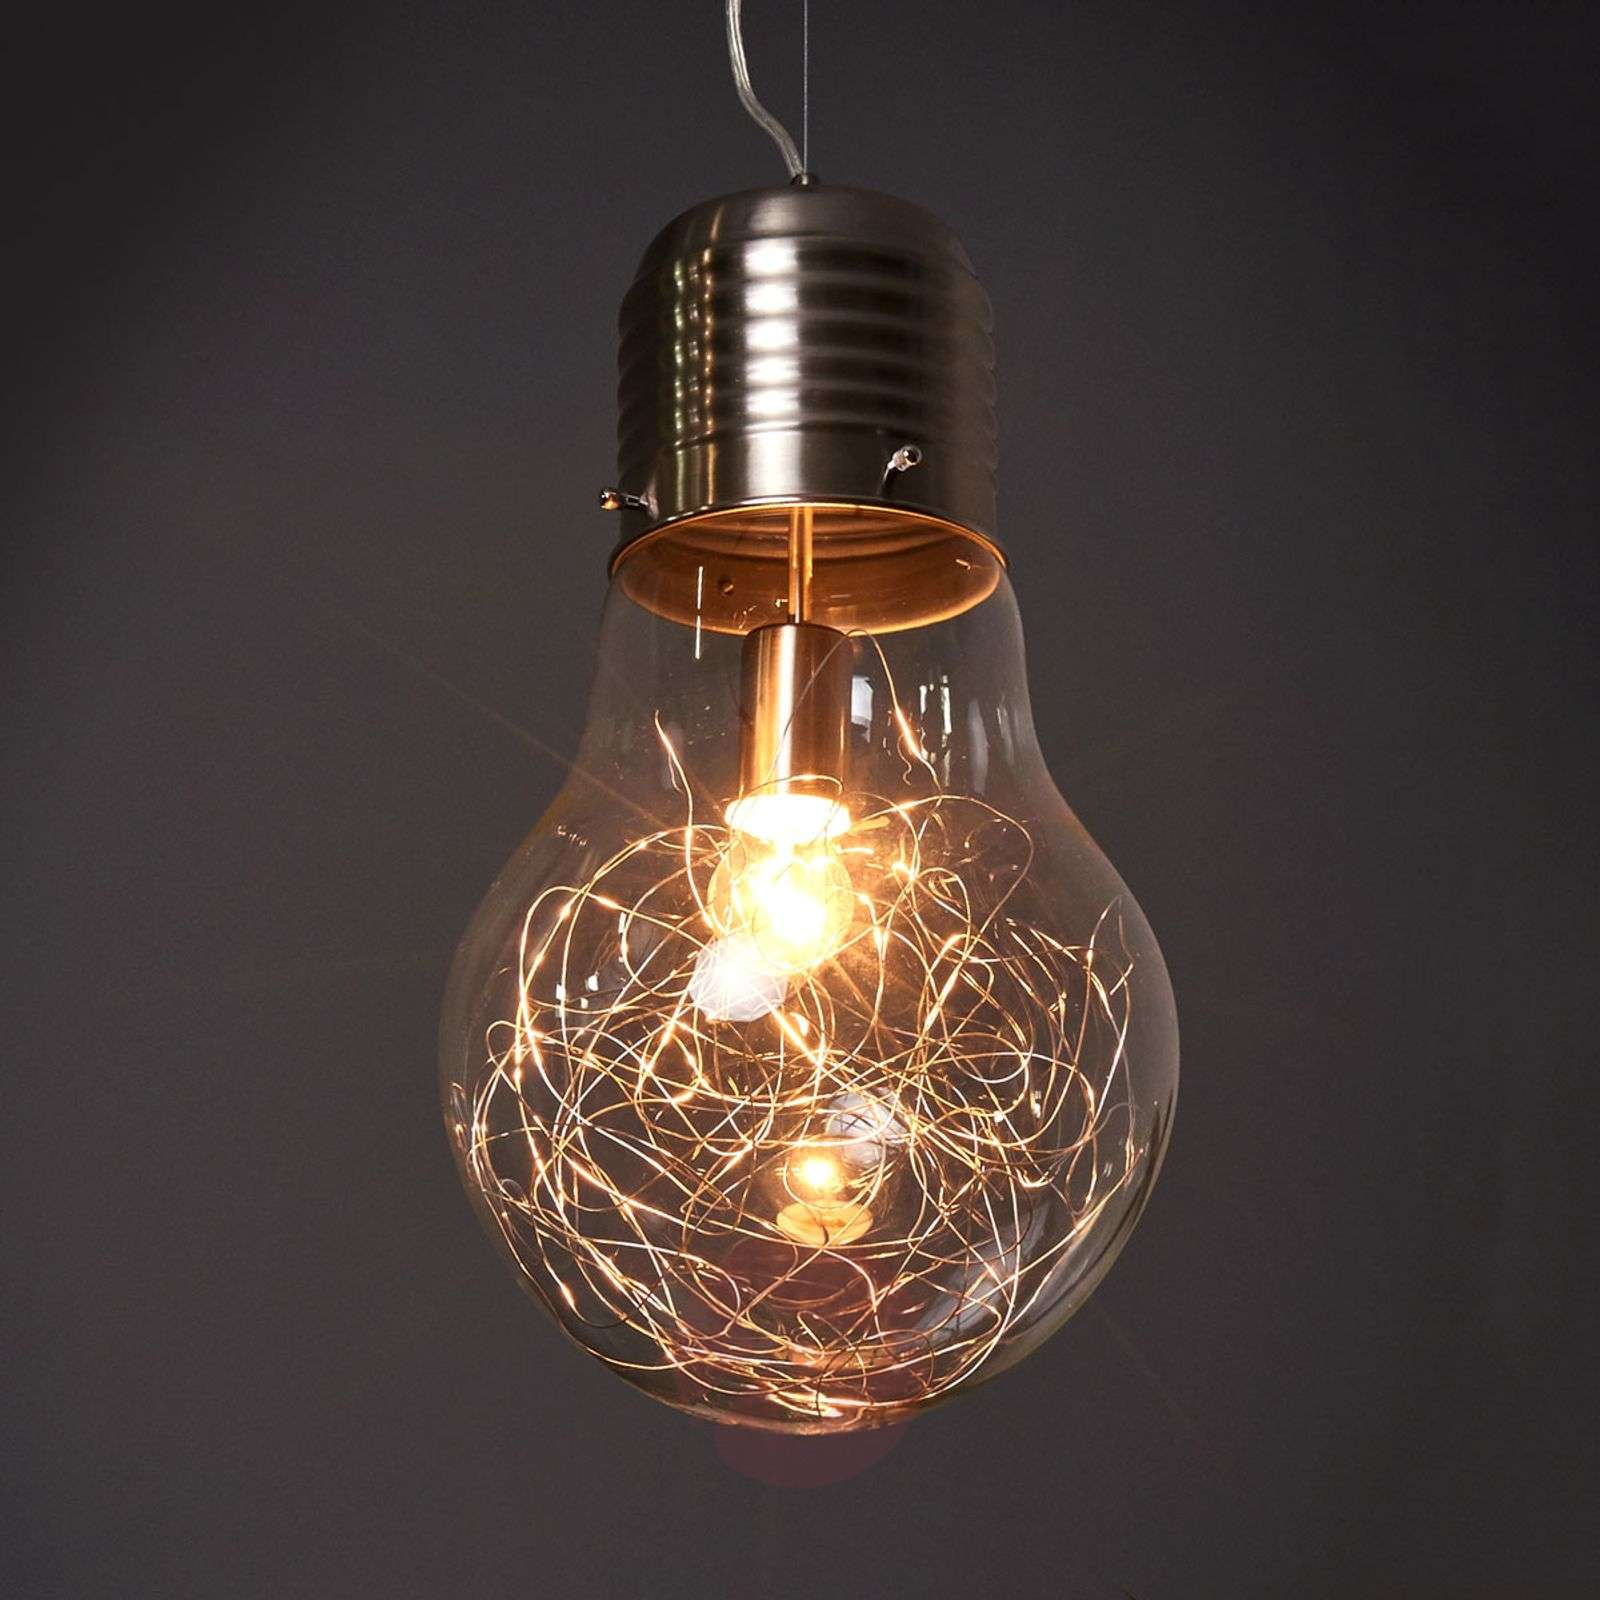 ideas piece design fixtures bulb designing model pendant emitted bronze gold round color light perfect bulbs indirectly lighting contemporary shape